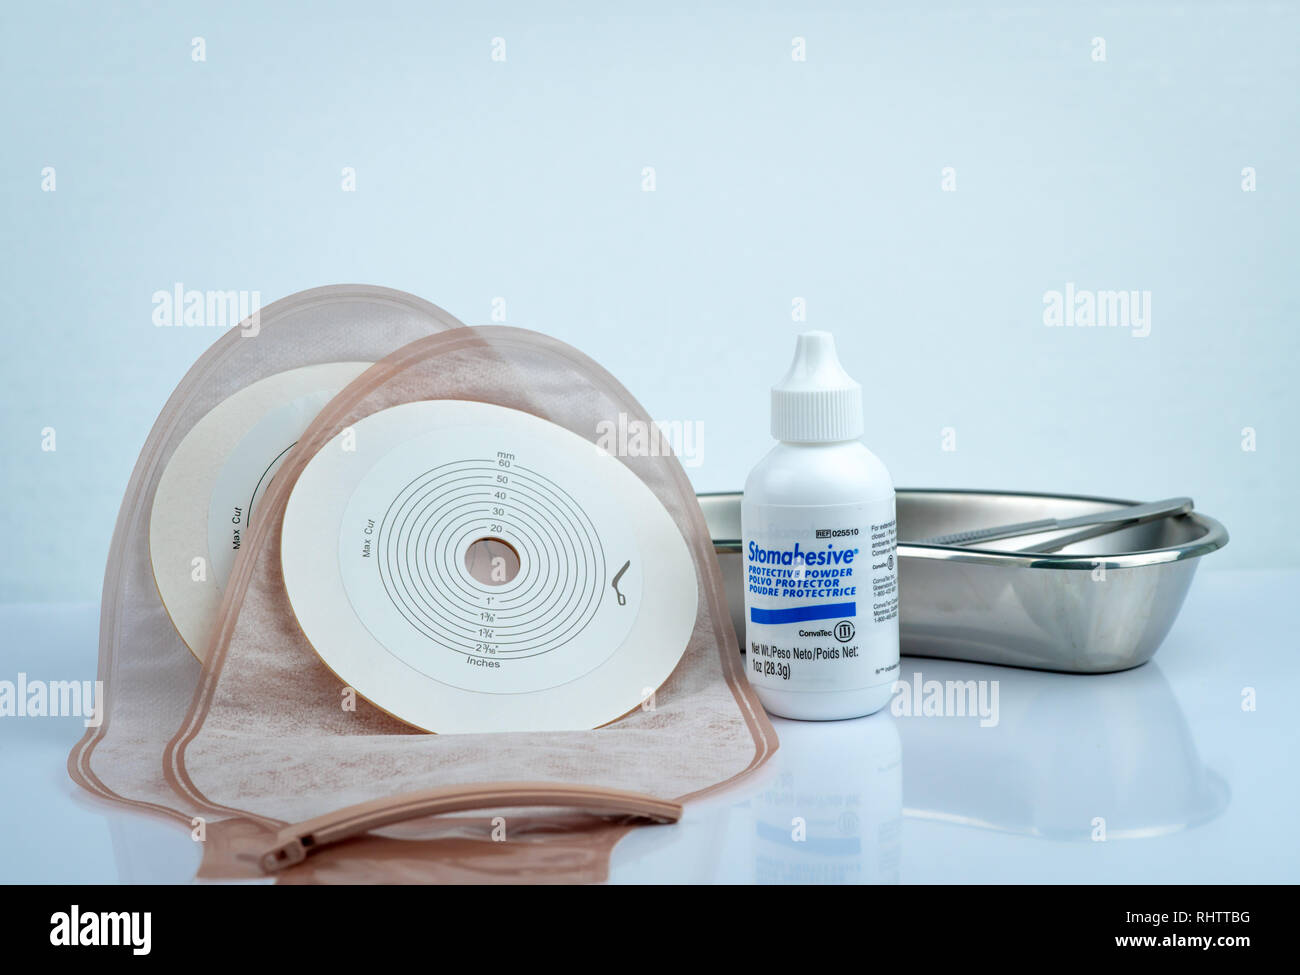 CHONBURI, THAILAND-AUGUST 3, 2018 : Stomahesive protective powder. Stomahesive product of Convatec. Stoma care products and one piece drainable ileost - Stock Image